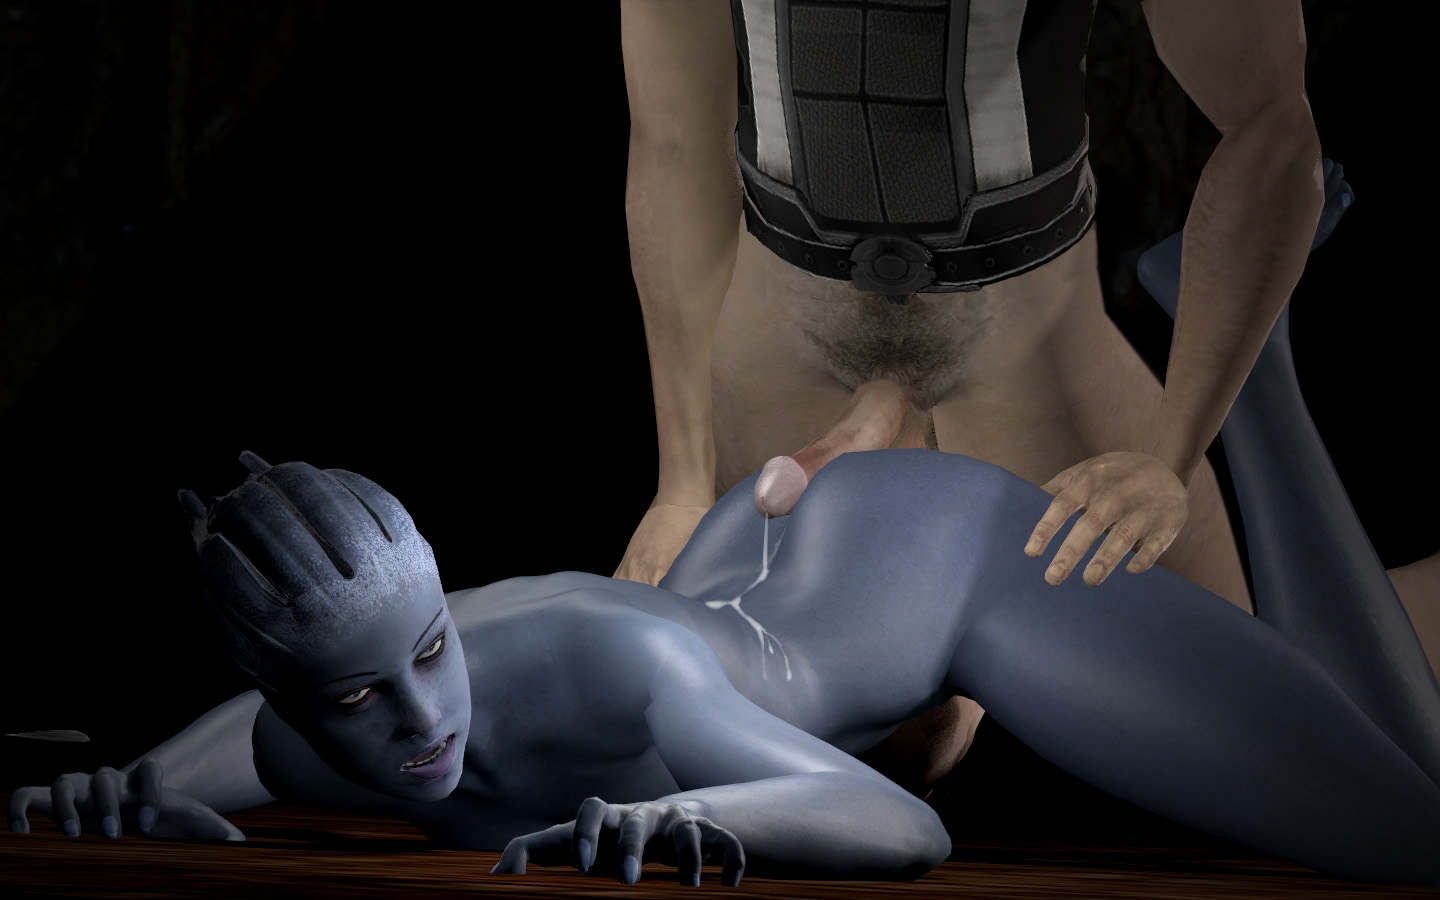 Liara mass effect porn erotic scene